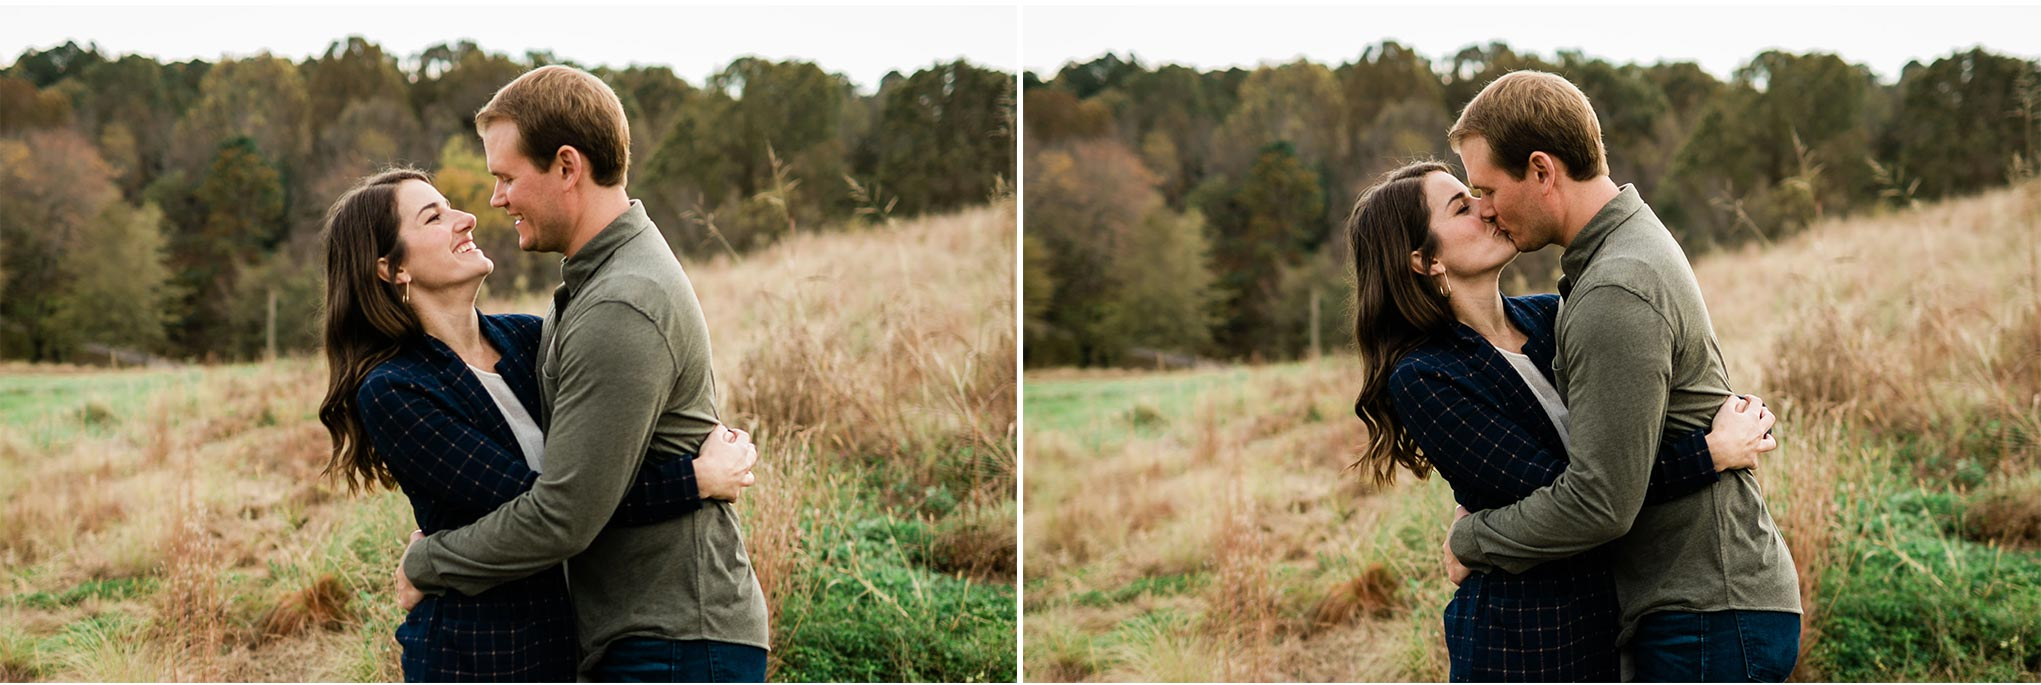 Outdoor couple portrait at NC Museum of Art | Raleigh Photographer | By G. Lin Photography